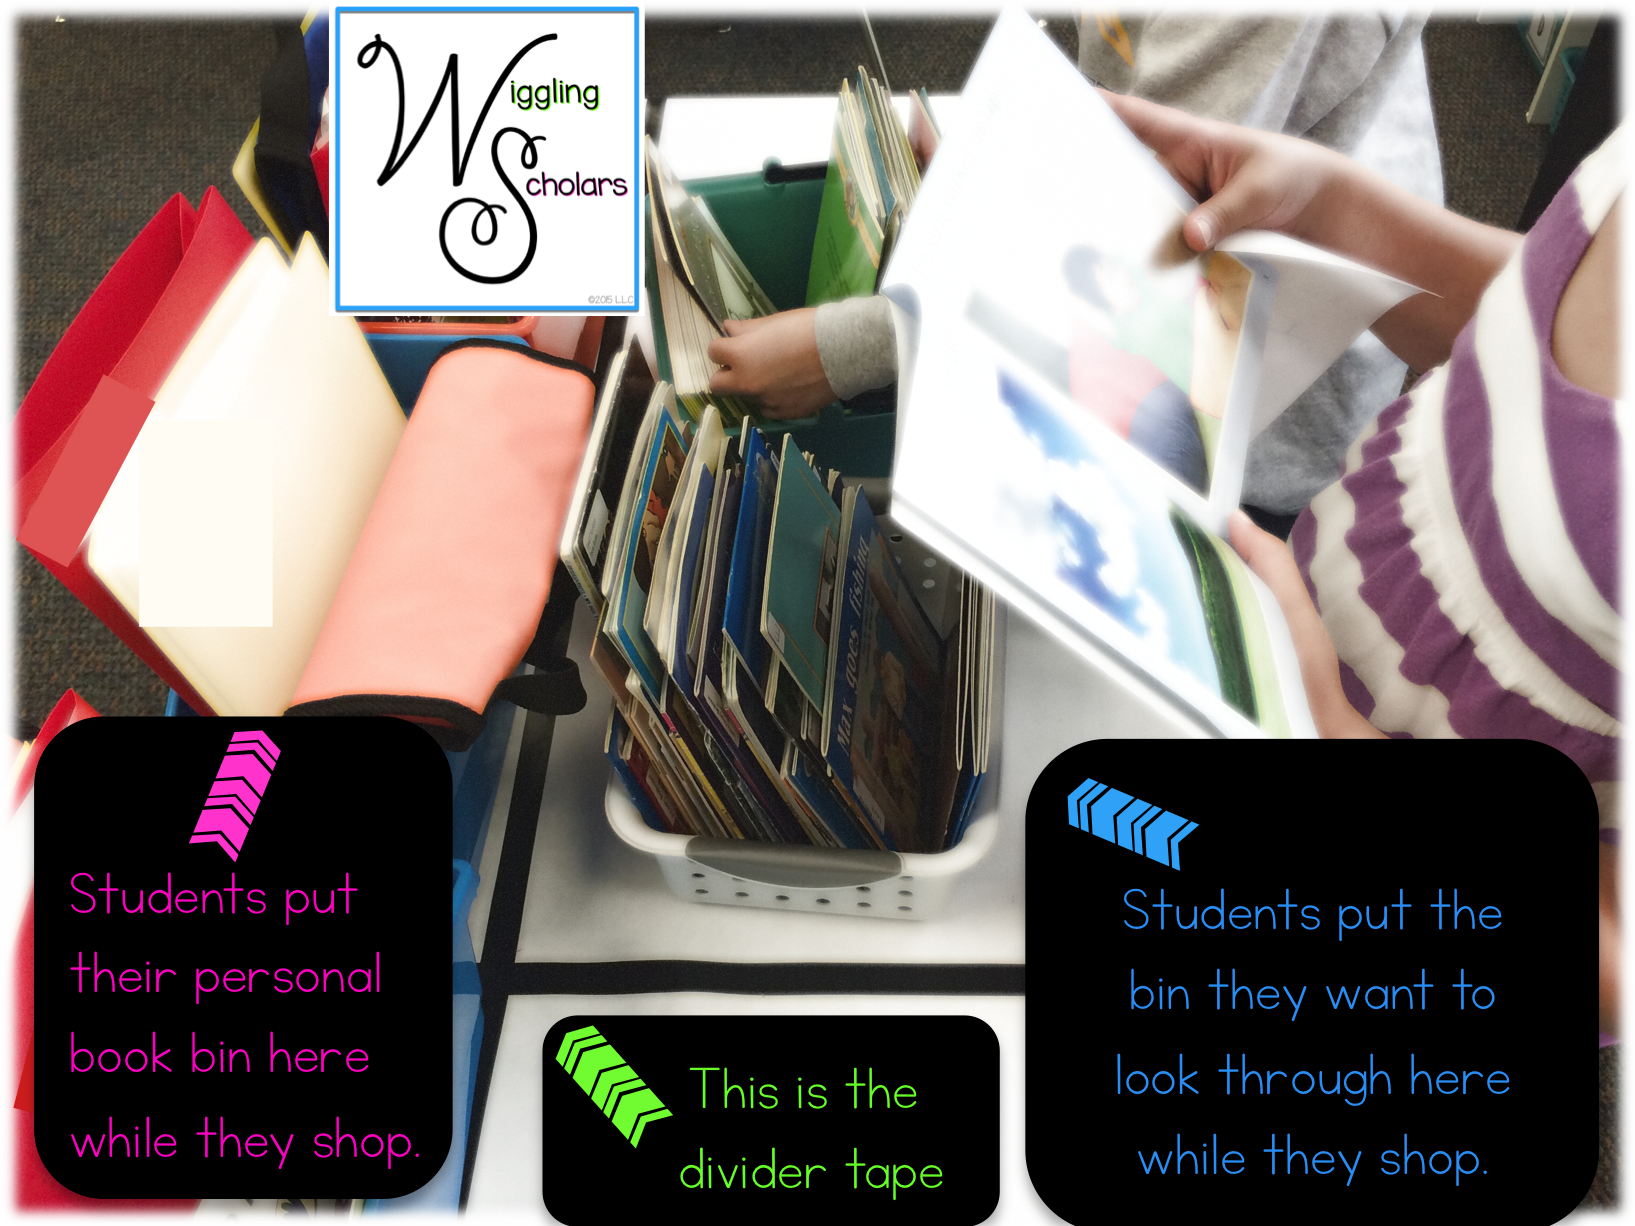 Book Shopping Table Organization by Wiggling Scholars